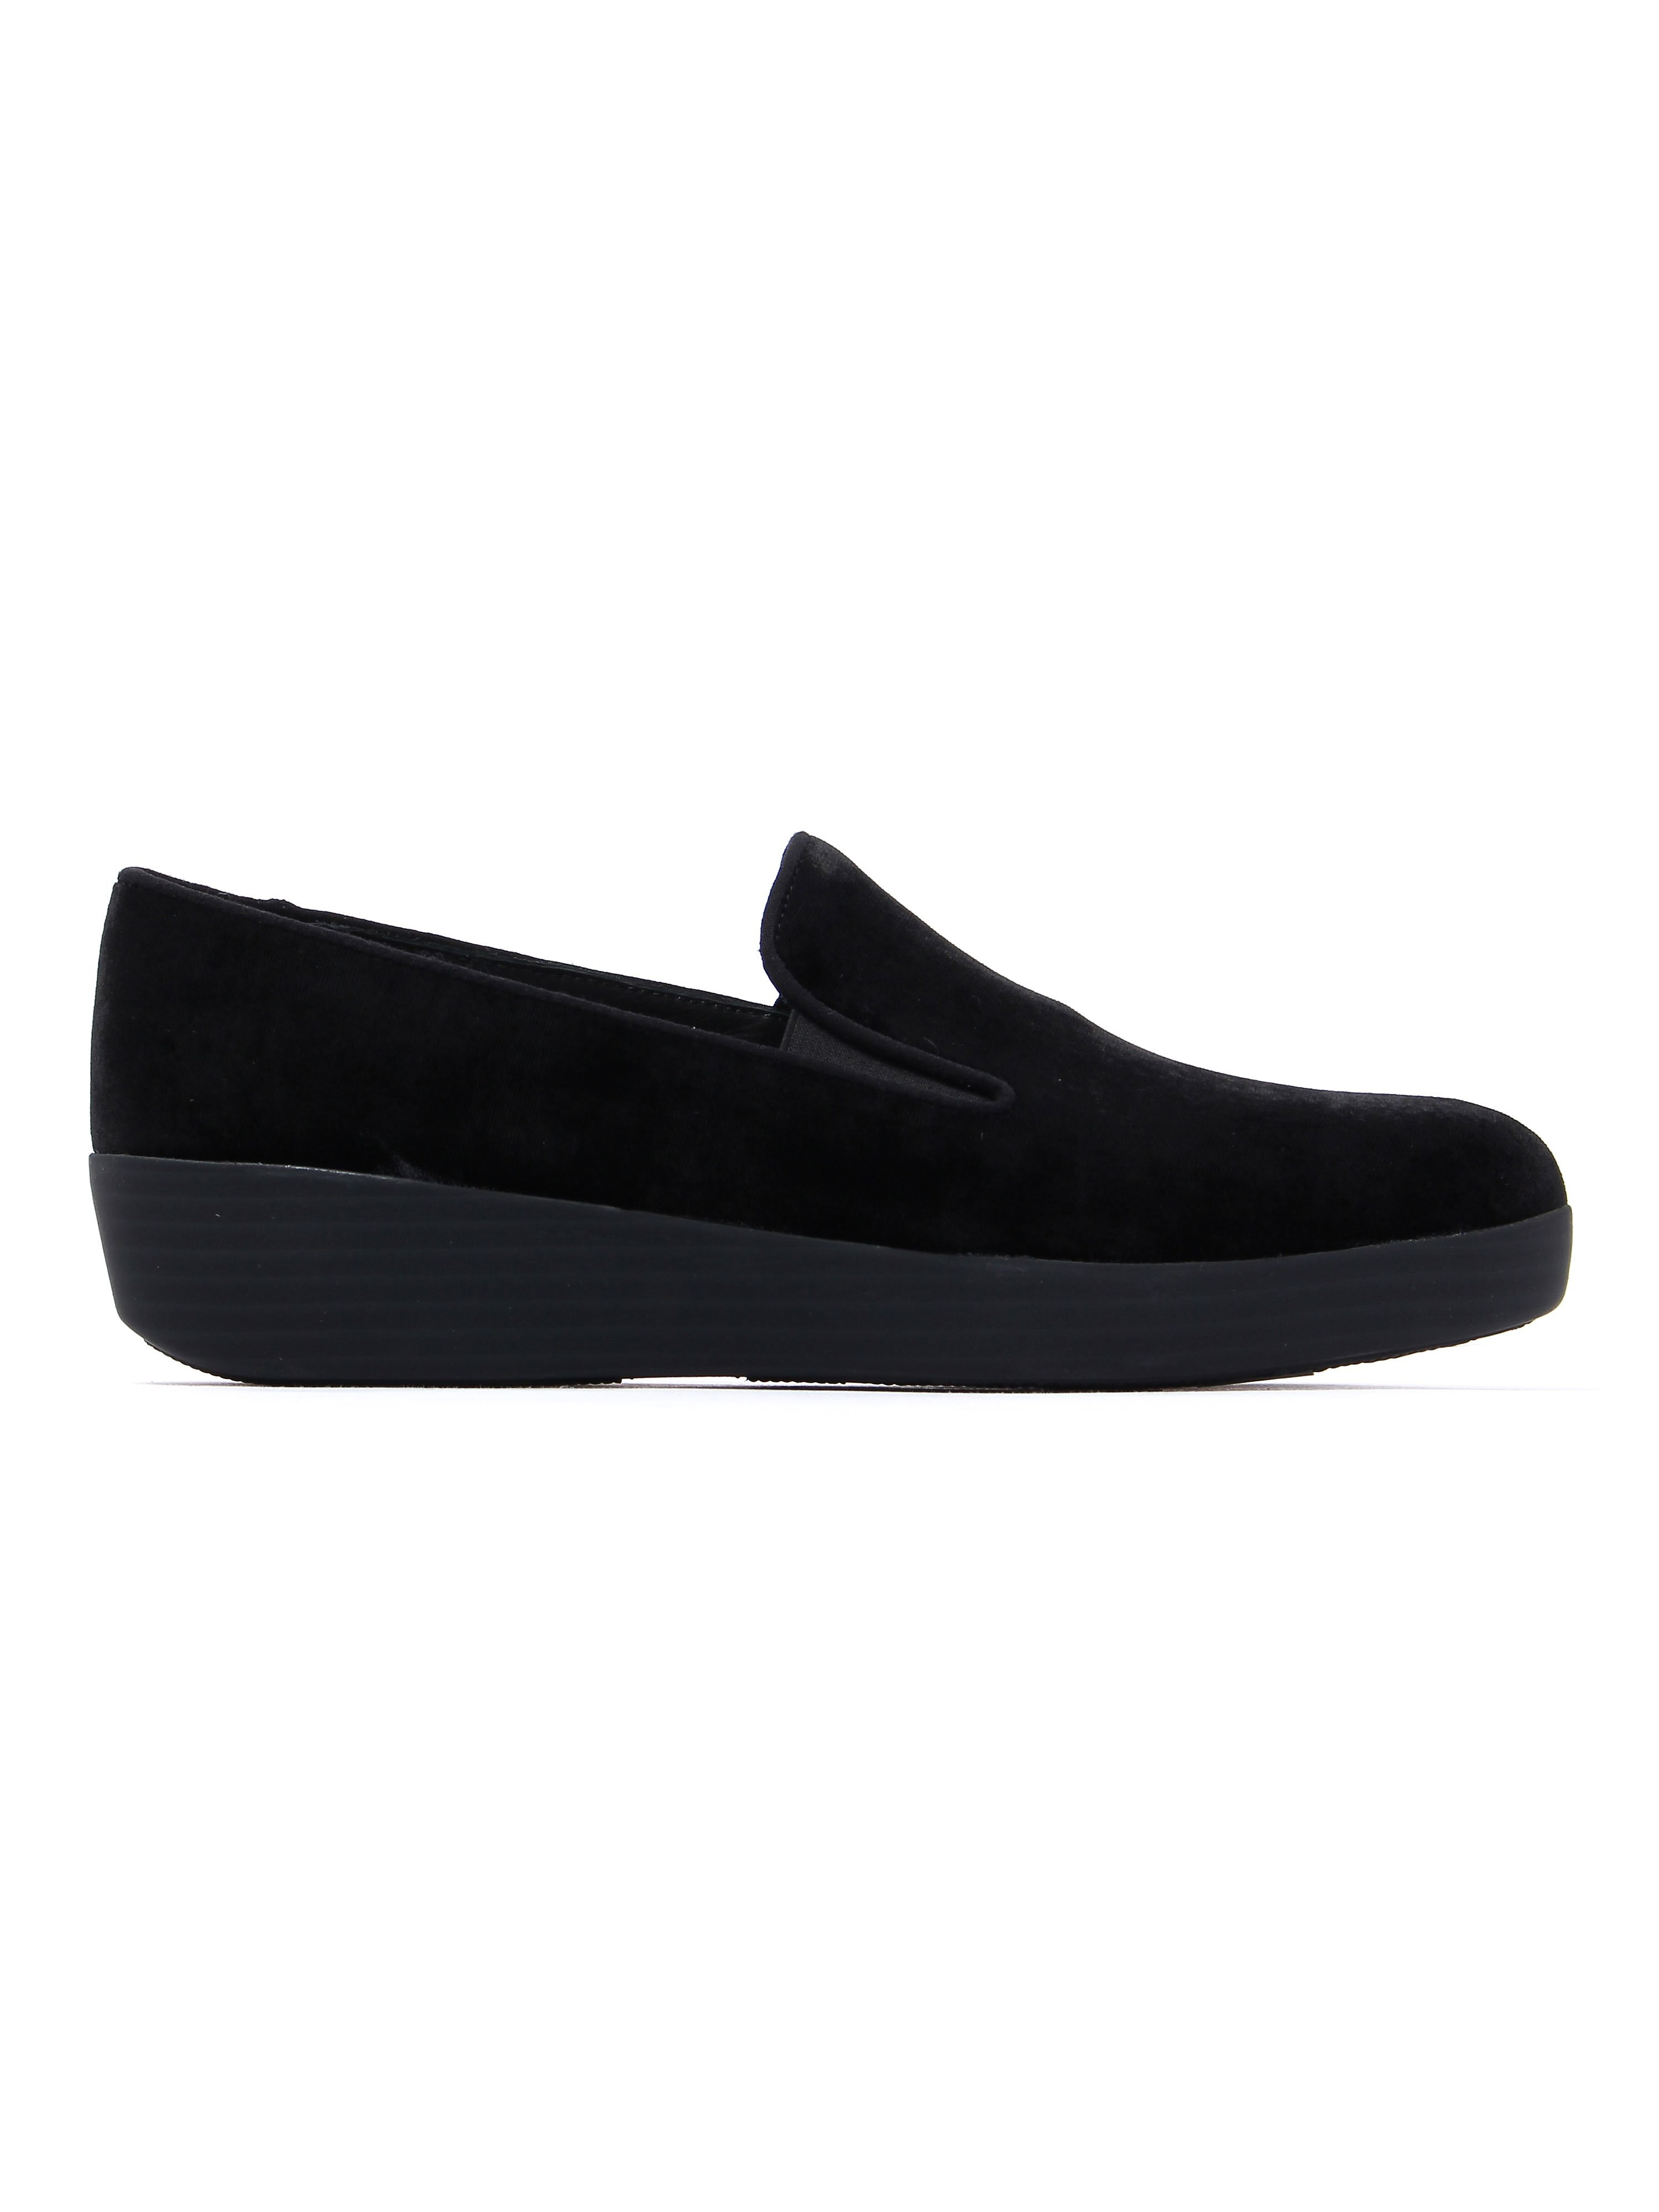 FitFlop Women's Superskate Loafers - Black Velvet